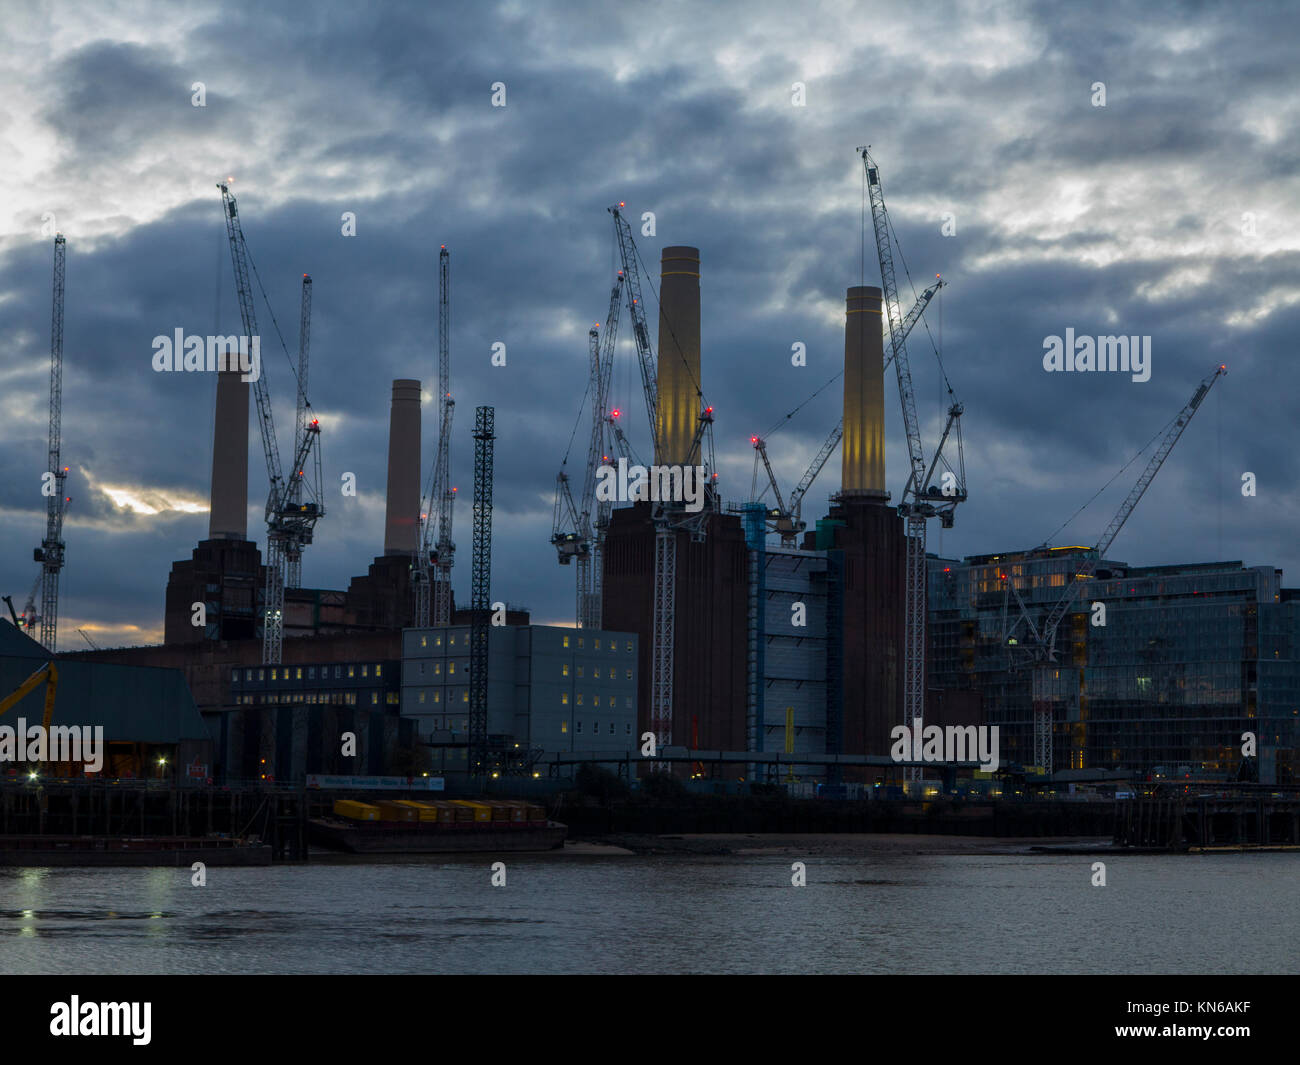 Battersea Power Station at dusk - Stock Image